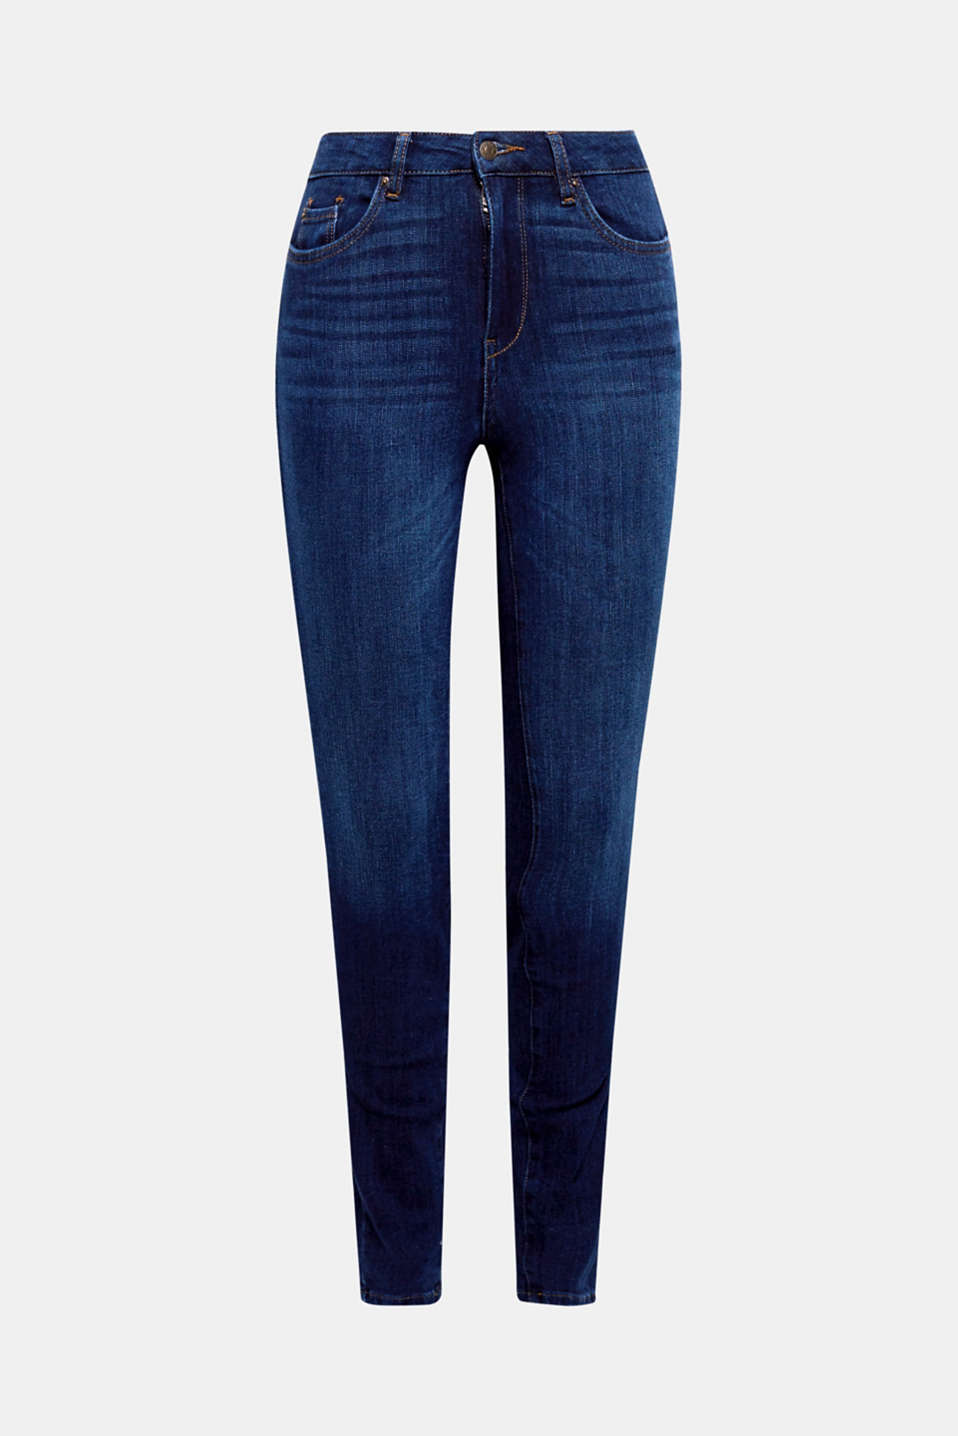 These innovative and practical shaping jeans with 4-way stretch shape your legs perfectly!